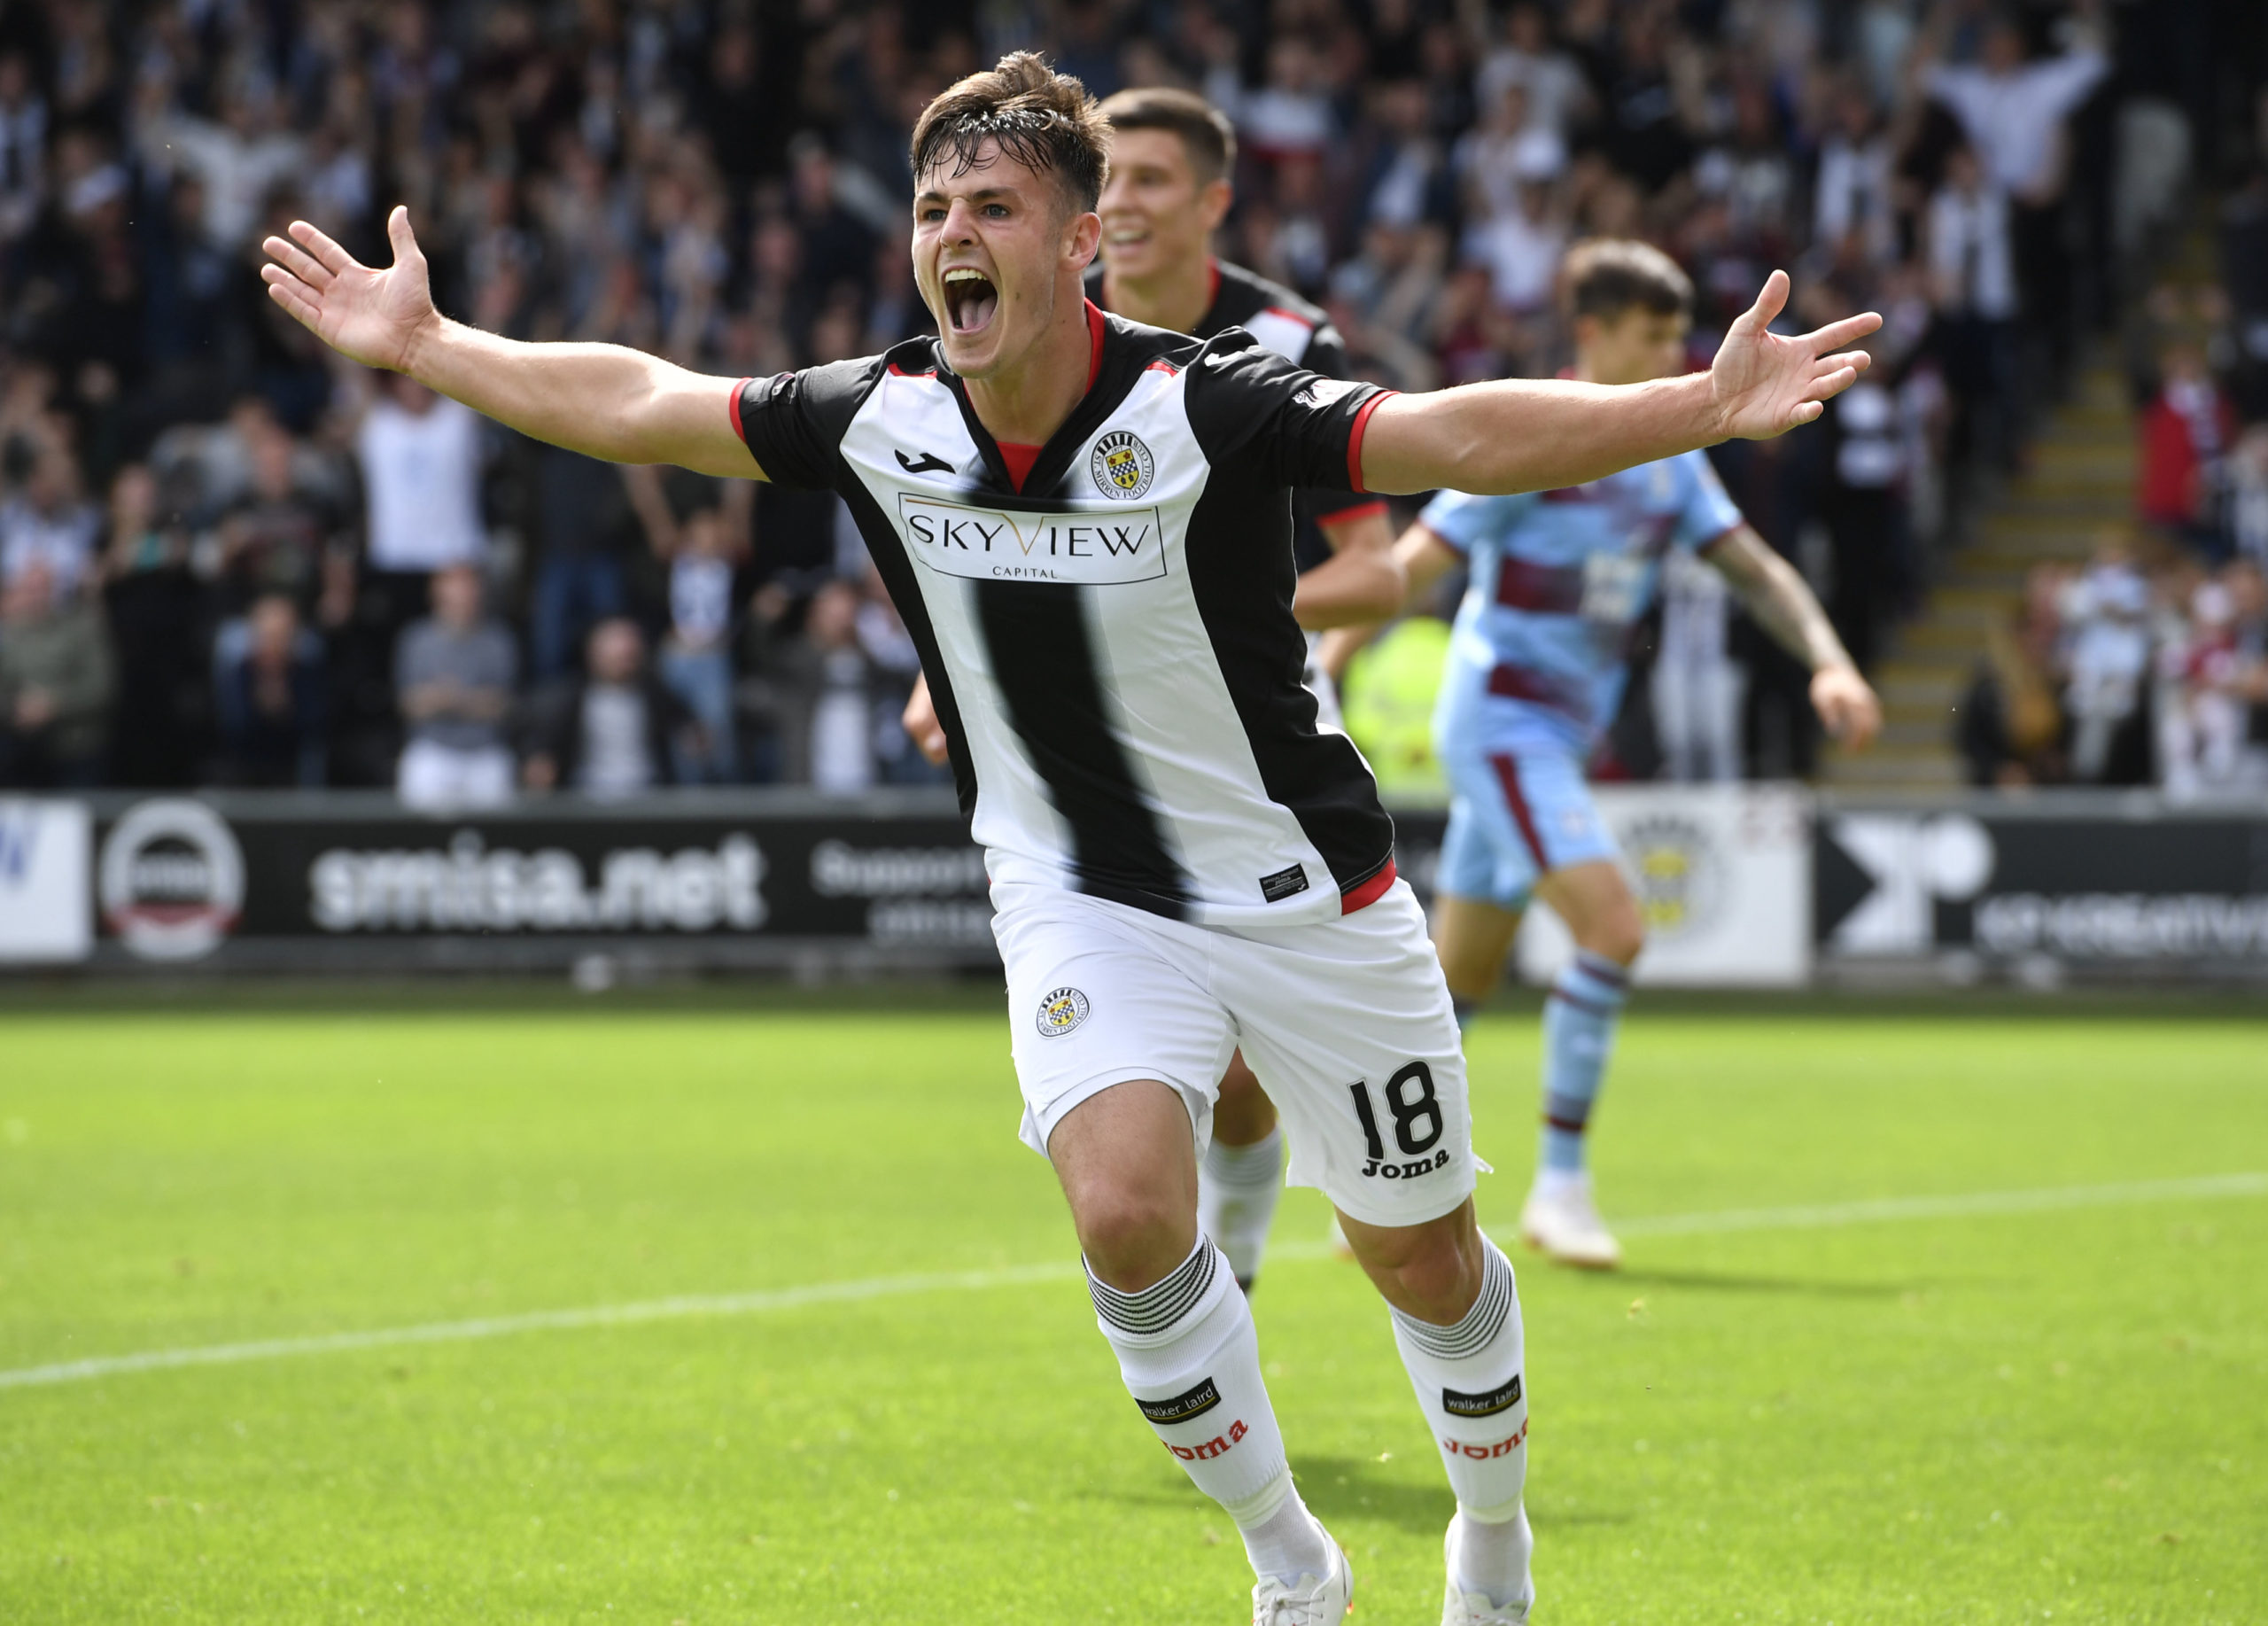 Danny Mullen scores for St Mirren against Dundee in 2018